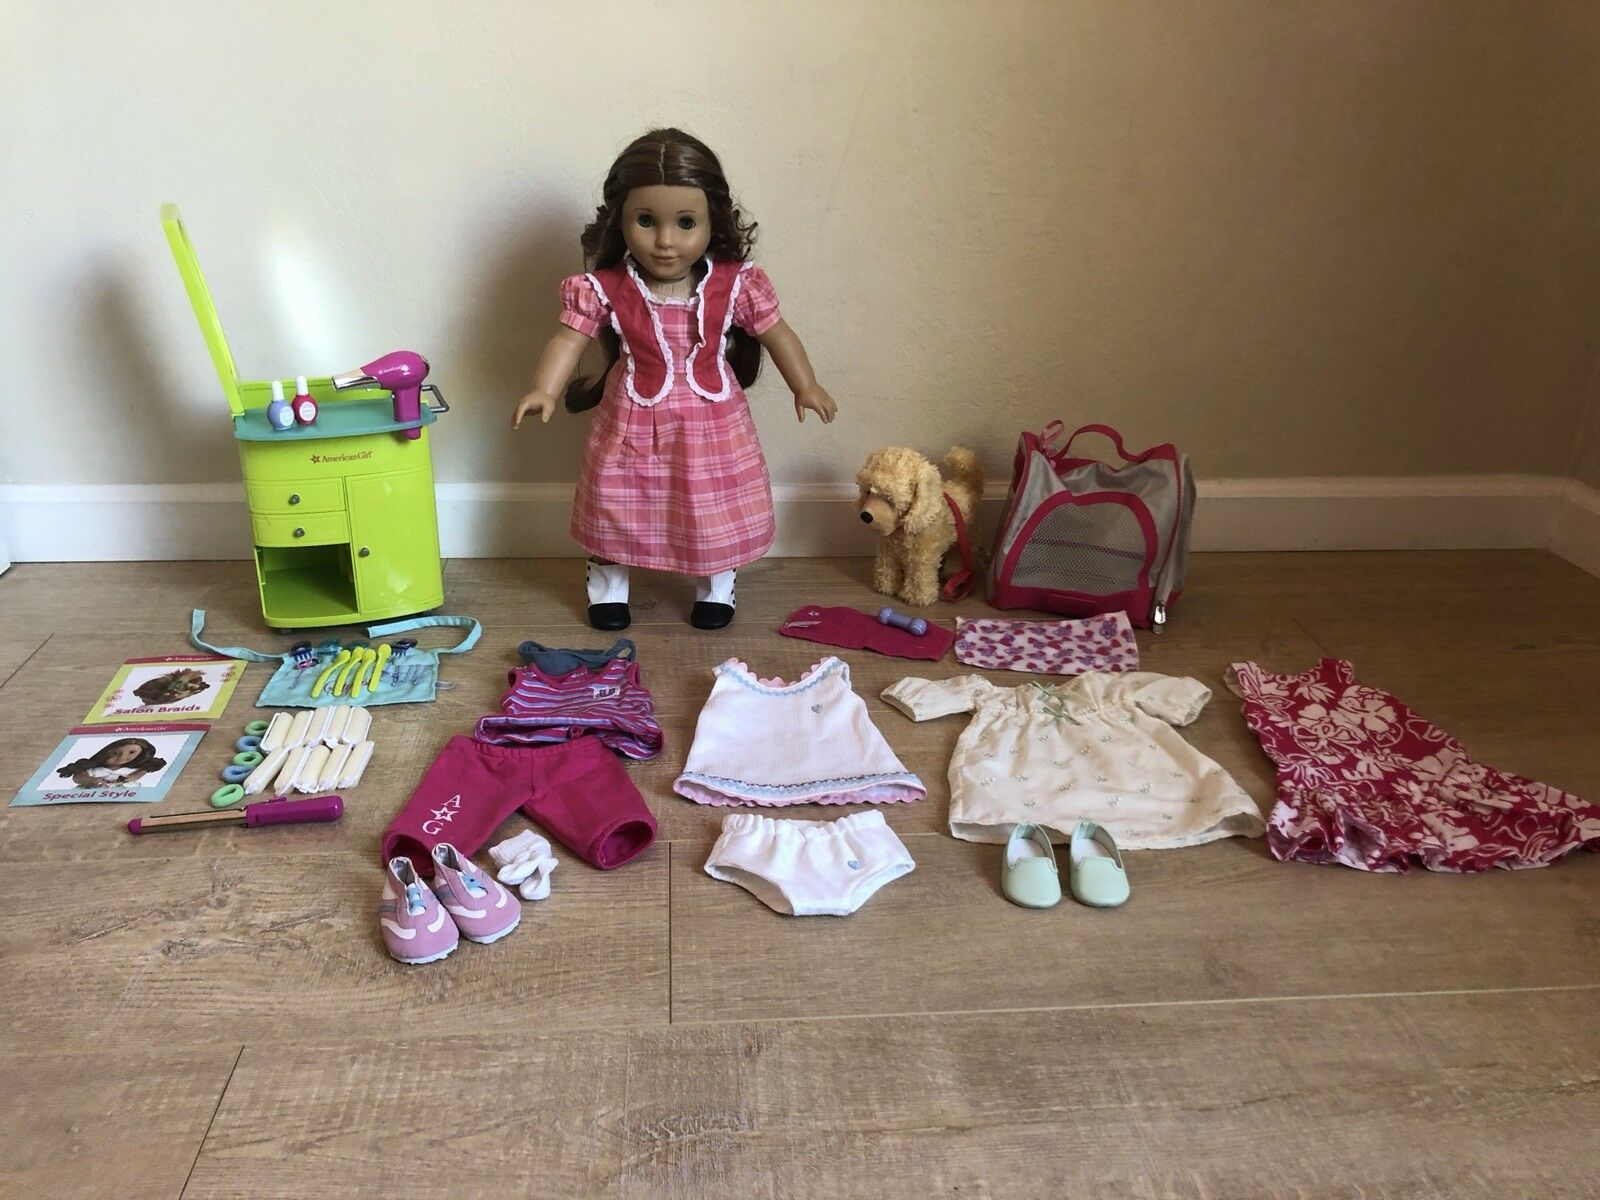 American Girl Lot Retirot Marie Grace Doll, Salon, Clothes, Dog, Accessories Ect